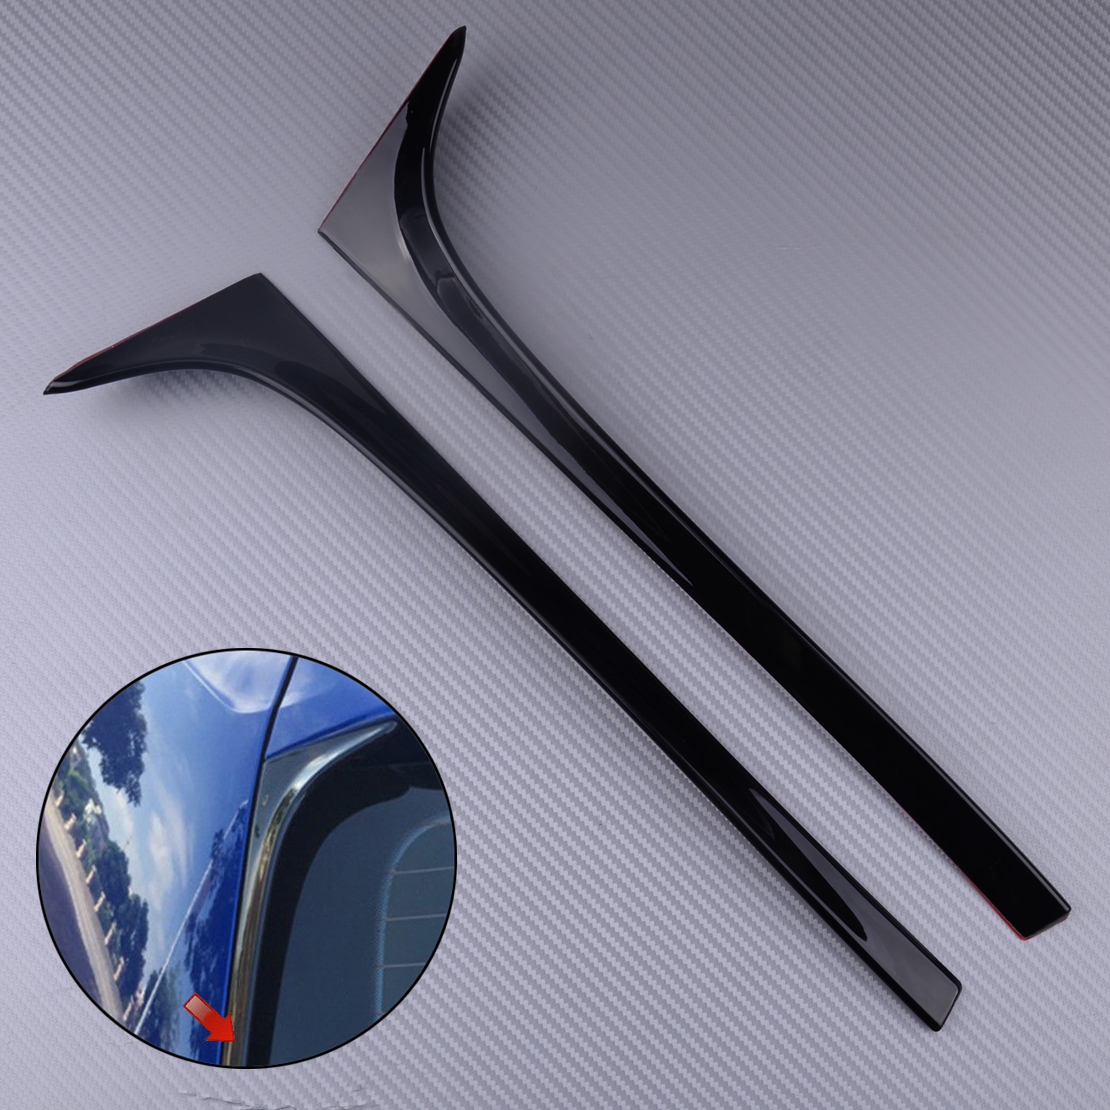 DWCX 2Pcs Car Black Rear Window Side Spoiler Wing Fit For VW <font><b>GOLF</b></font> MK7 MK7.5 <font><b>R</b></font> GTE GTD image